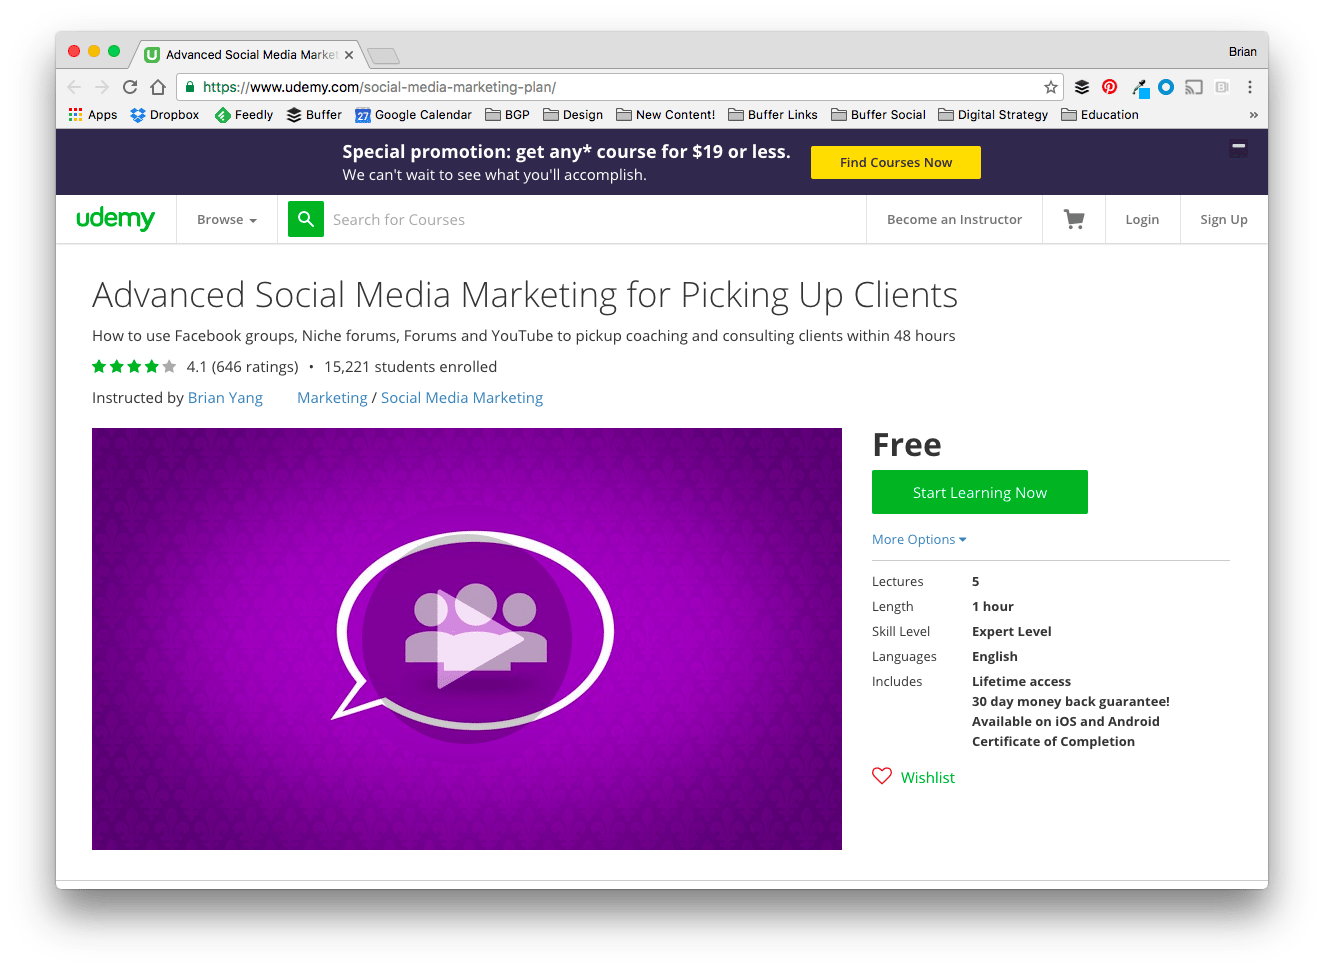 Advanced Social Media Marketing for Picking Up Clients